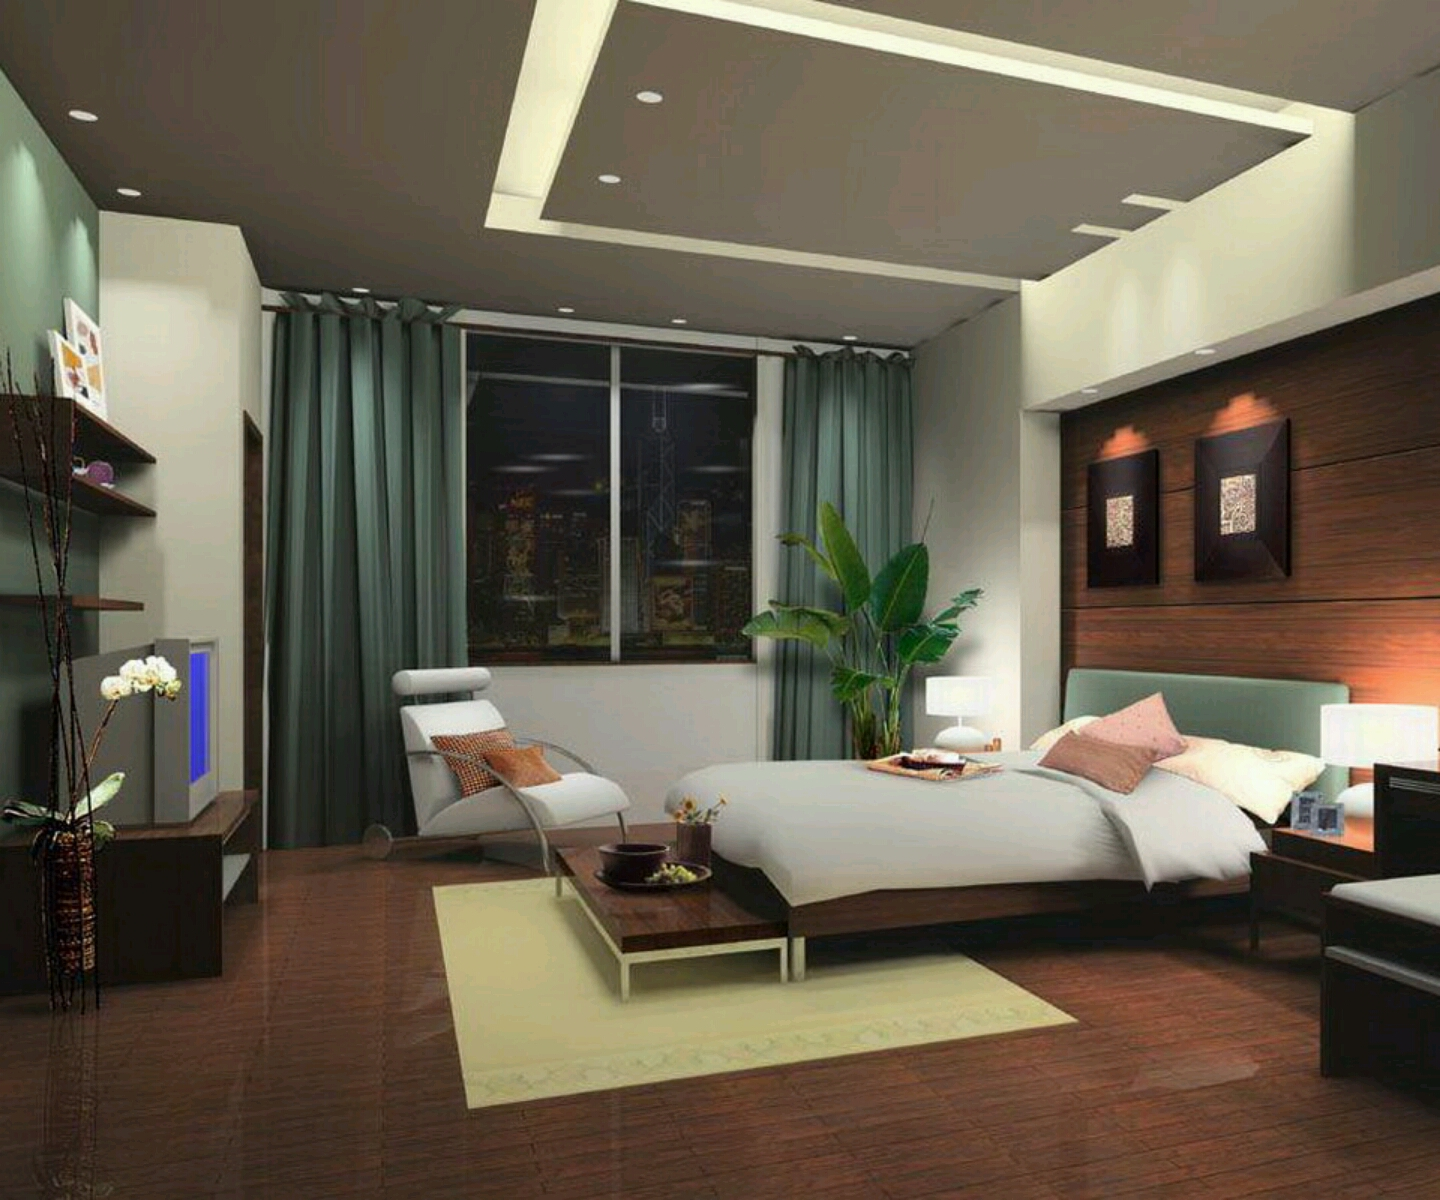 New home designs latest modern bedrooms designs best ideas for Home room design ideas